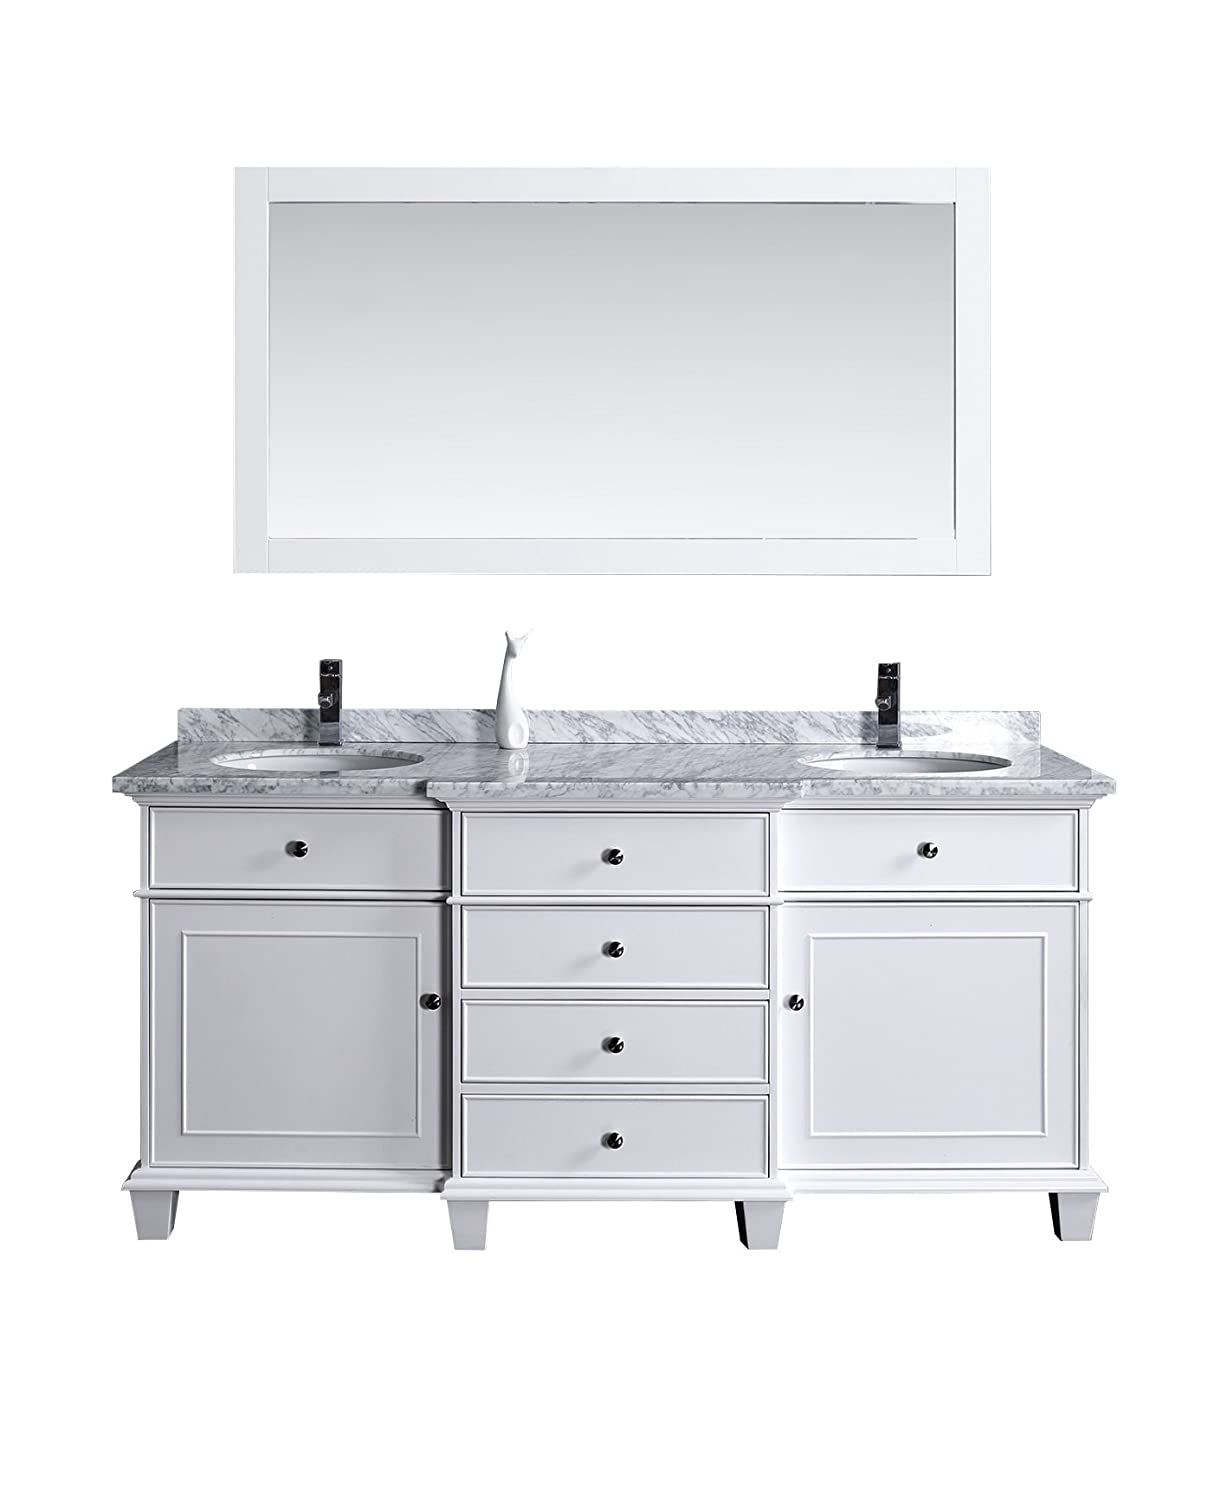 Stufurhome Hd 7000w 72 Cr Cadence Double Sink Bathroom Vanity With Mirror 72 White